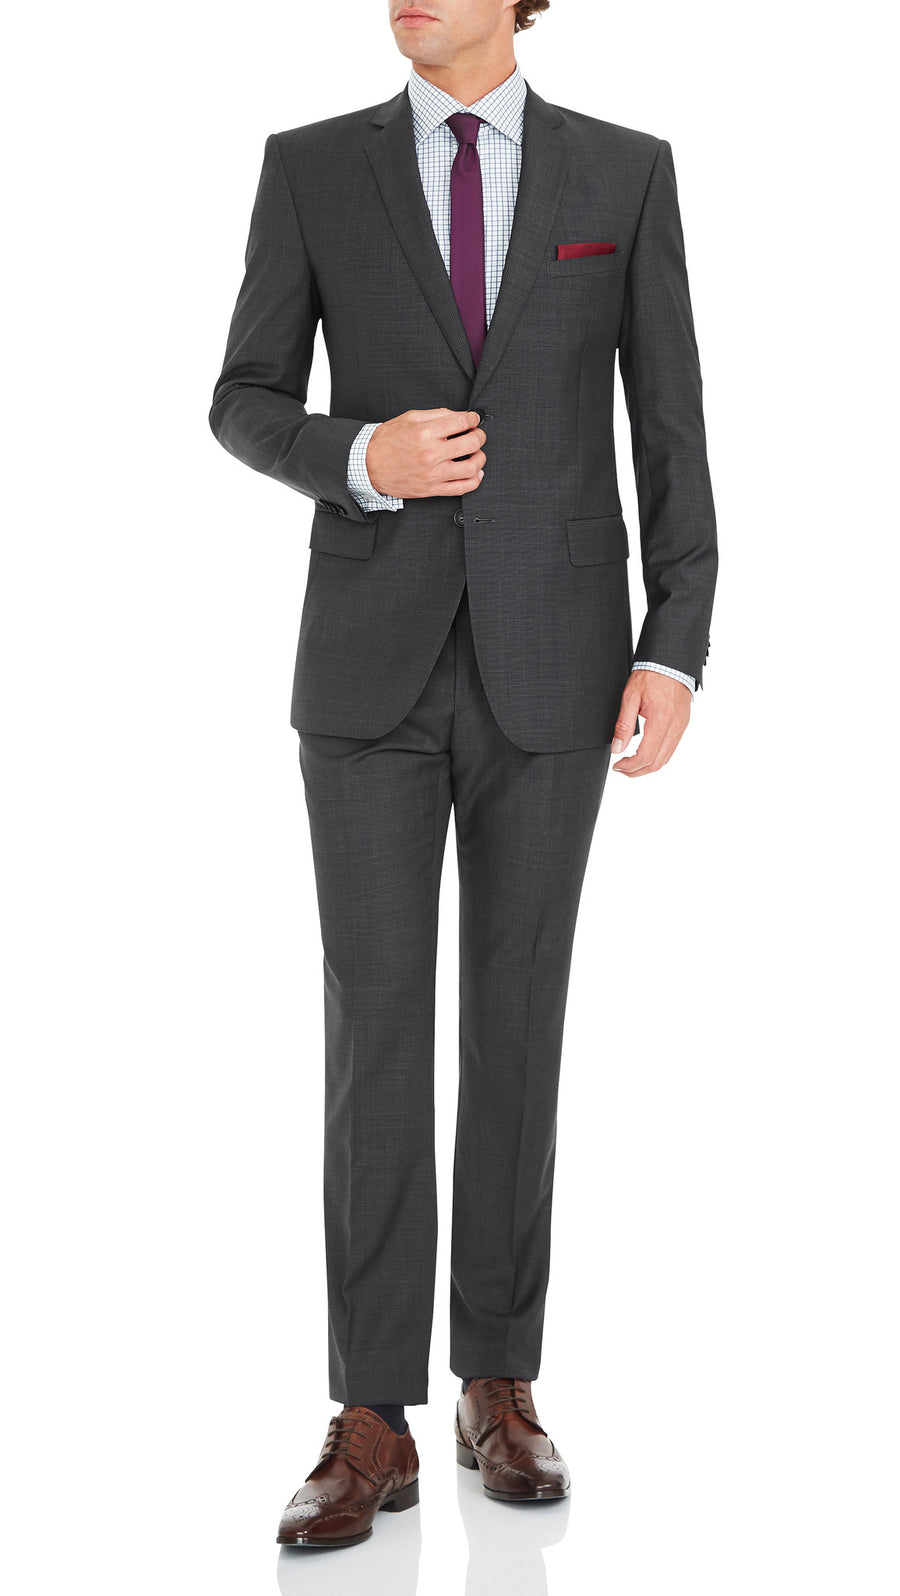 Nicholby & Harvard Suit in Charcoal - Ron Bennett Menswear  - 2